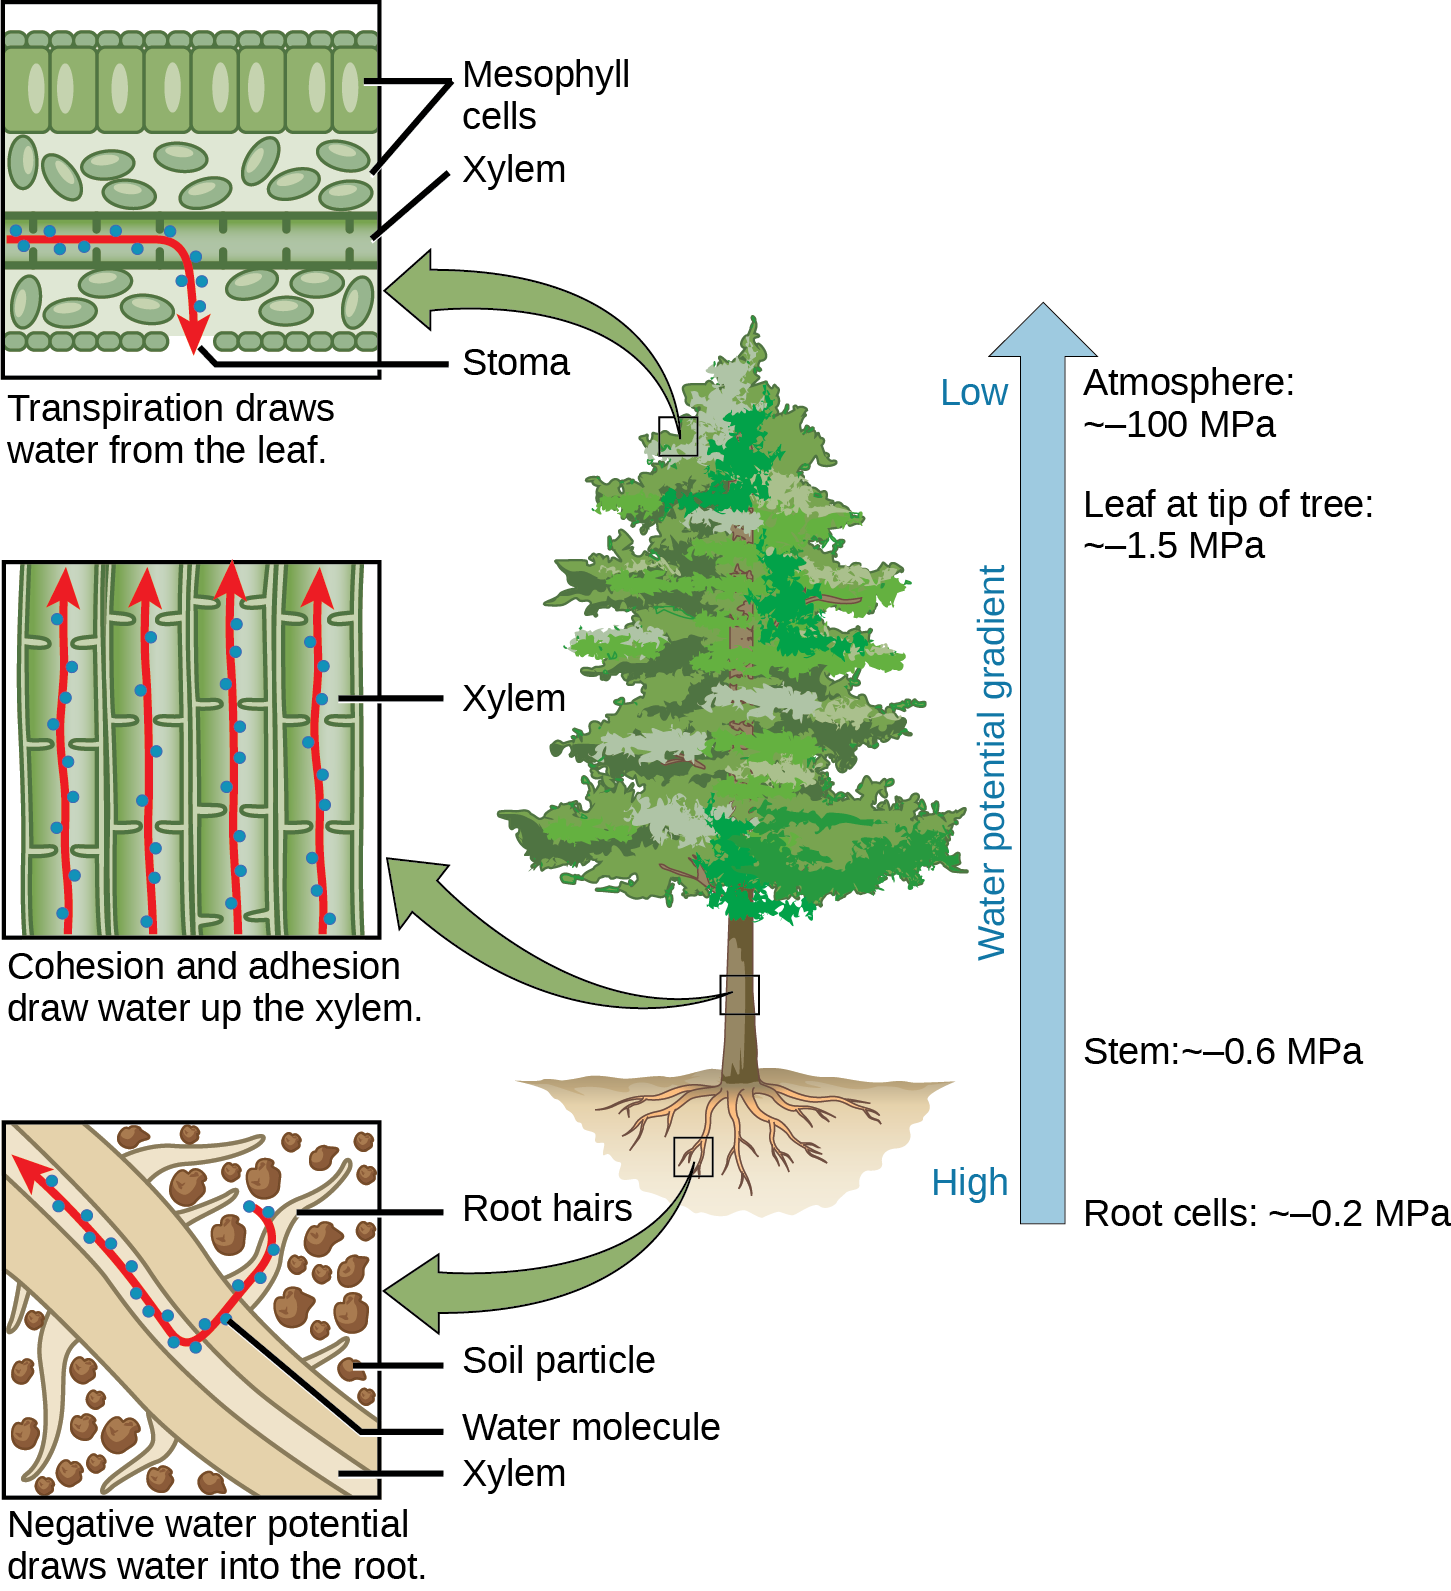 Illustration shows a pine tree. A blowup of the root indicates that negative water potential draws water from the soil into the root hairs, then into the root xylem. A blowup of the trunk indicates that cohesion and adhesion draws water up the xylem. A blowup of a leaf shows that transpiration draws water from the leaf through the stoma. Next to the tree is an arrow showing water potential, which is low at the roots and high in the leaves. The water potential varies from approximately 0.2 upper case M upper case P lower case a, in the root cells to approximately 0.6 M P a in the stem and from approximately 1.5 M P a in the highest leaves, to approximately 100 M P a in the atmosphere.